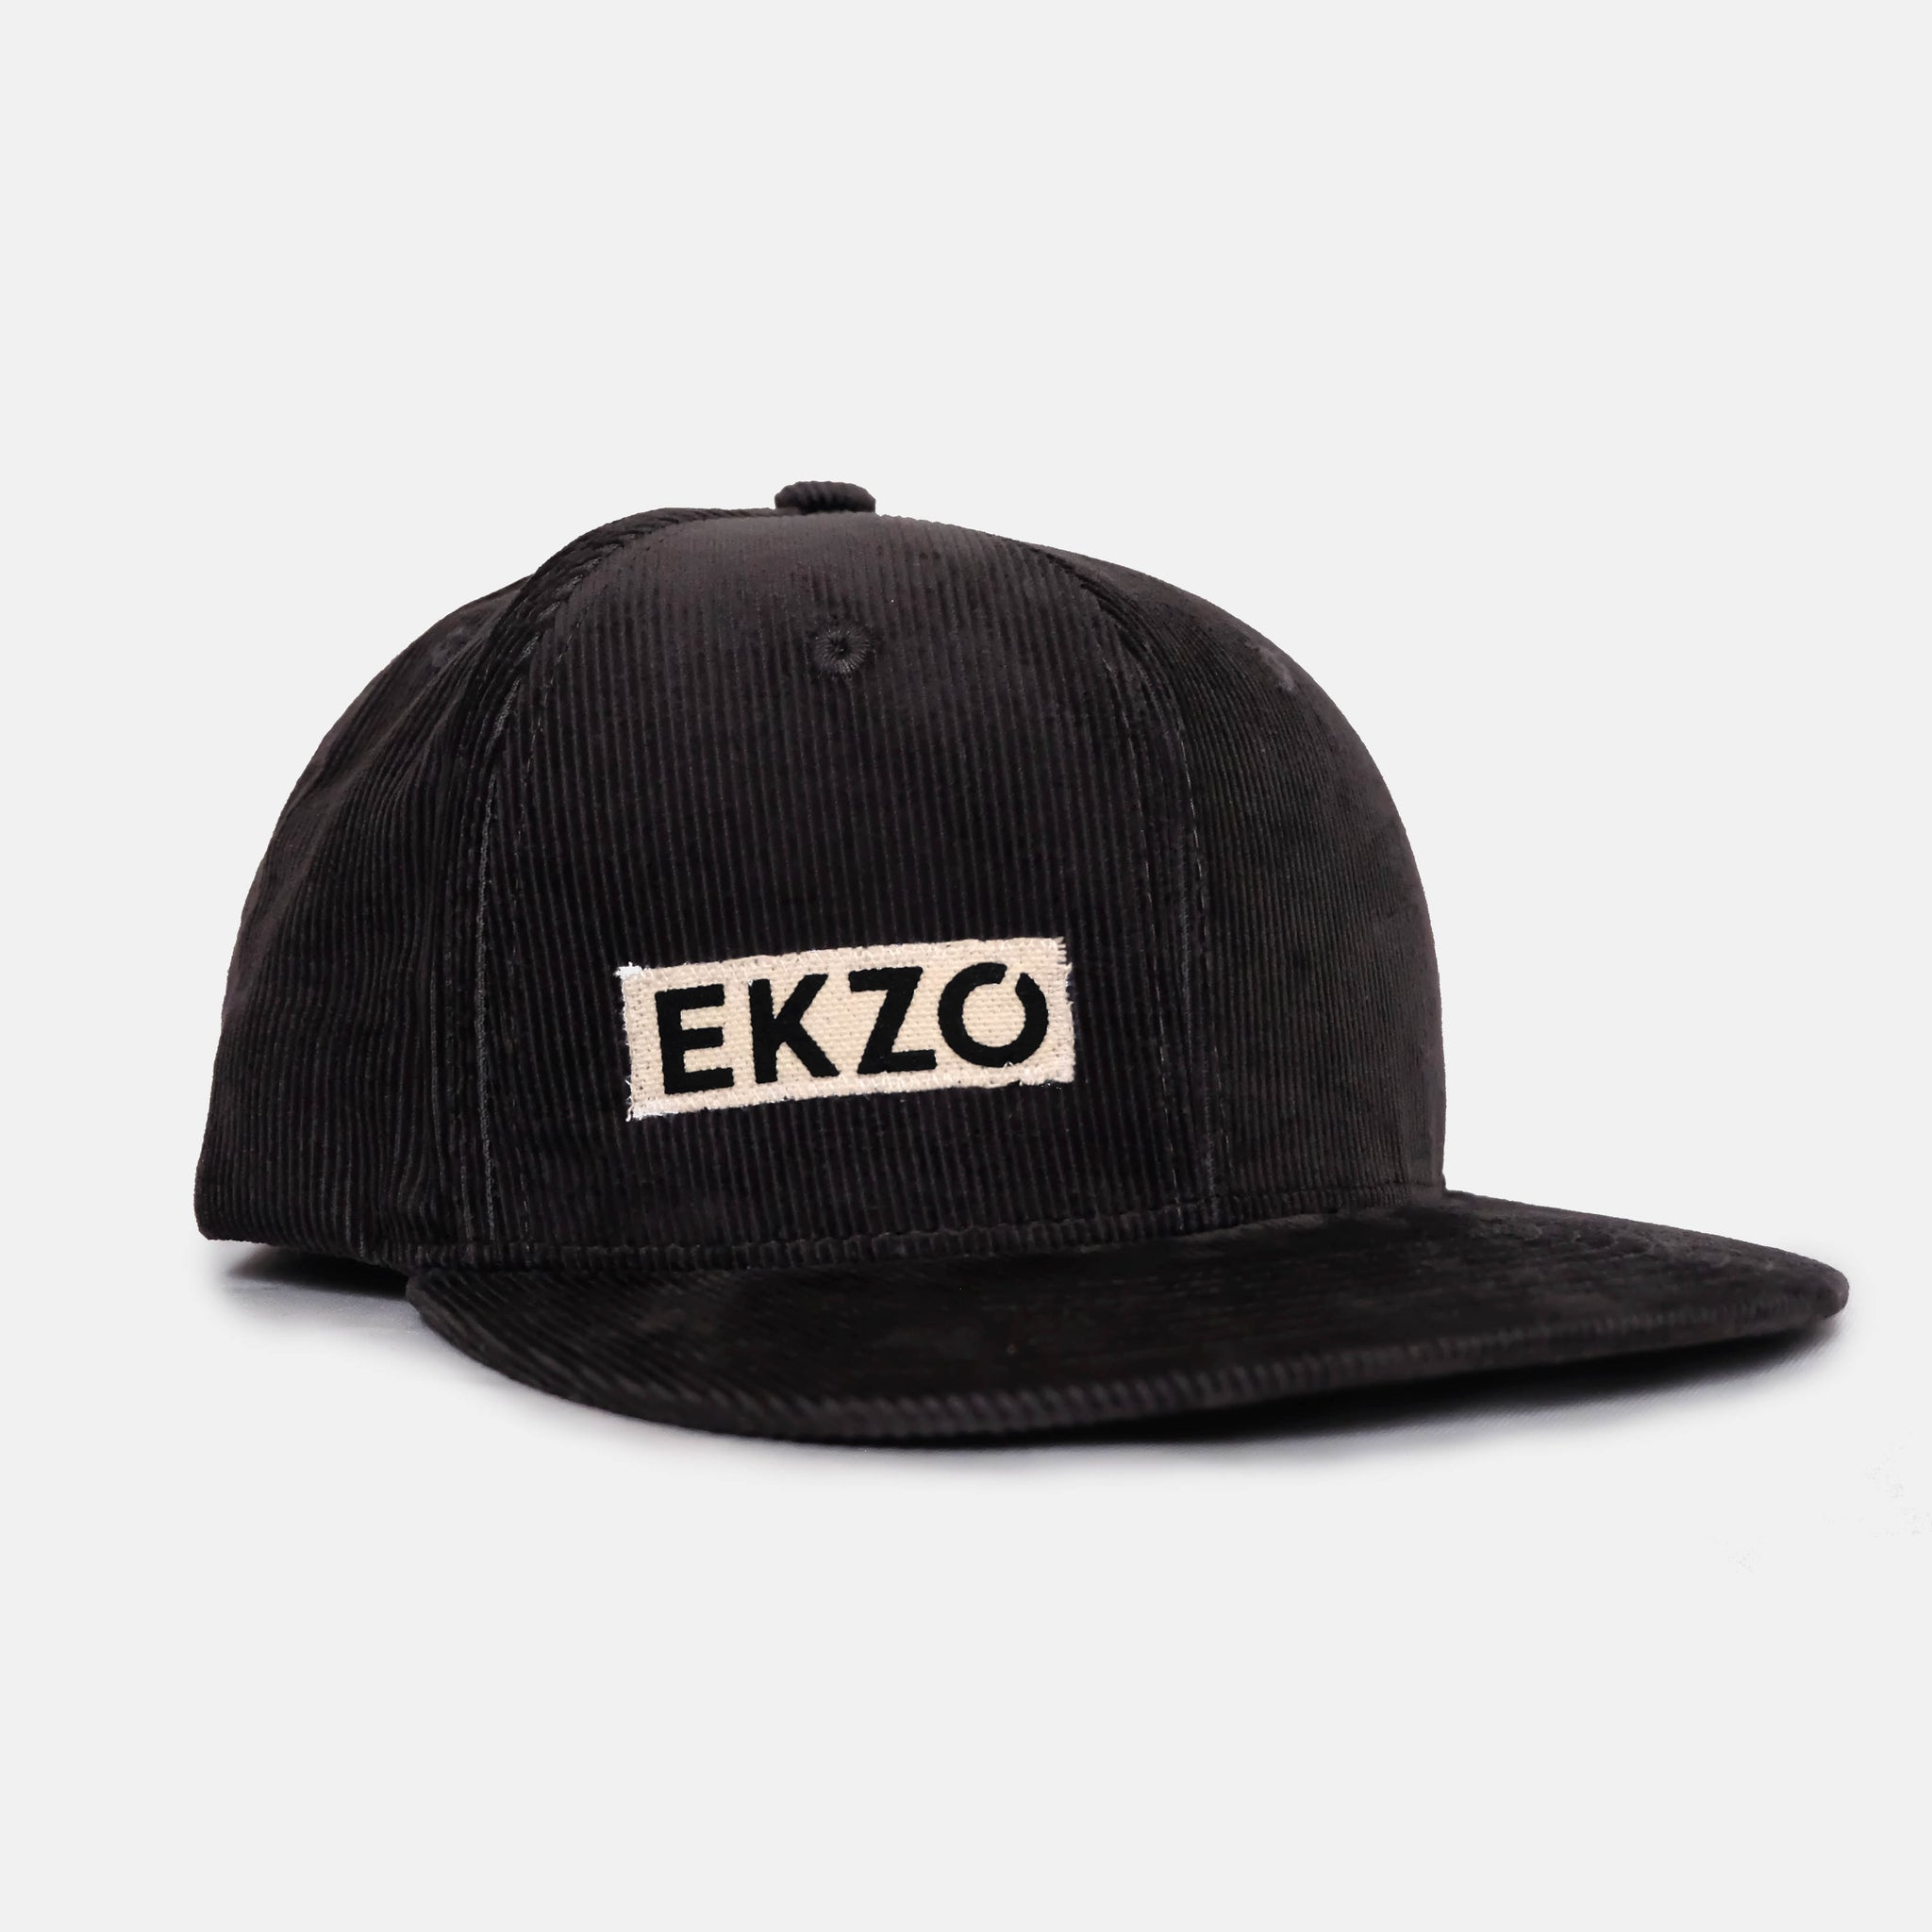 Full Corduroy Hat - Black - EKZO